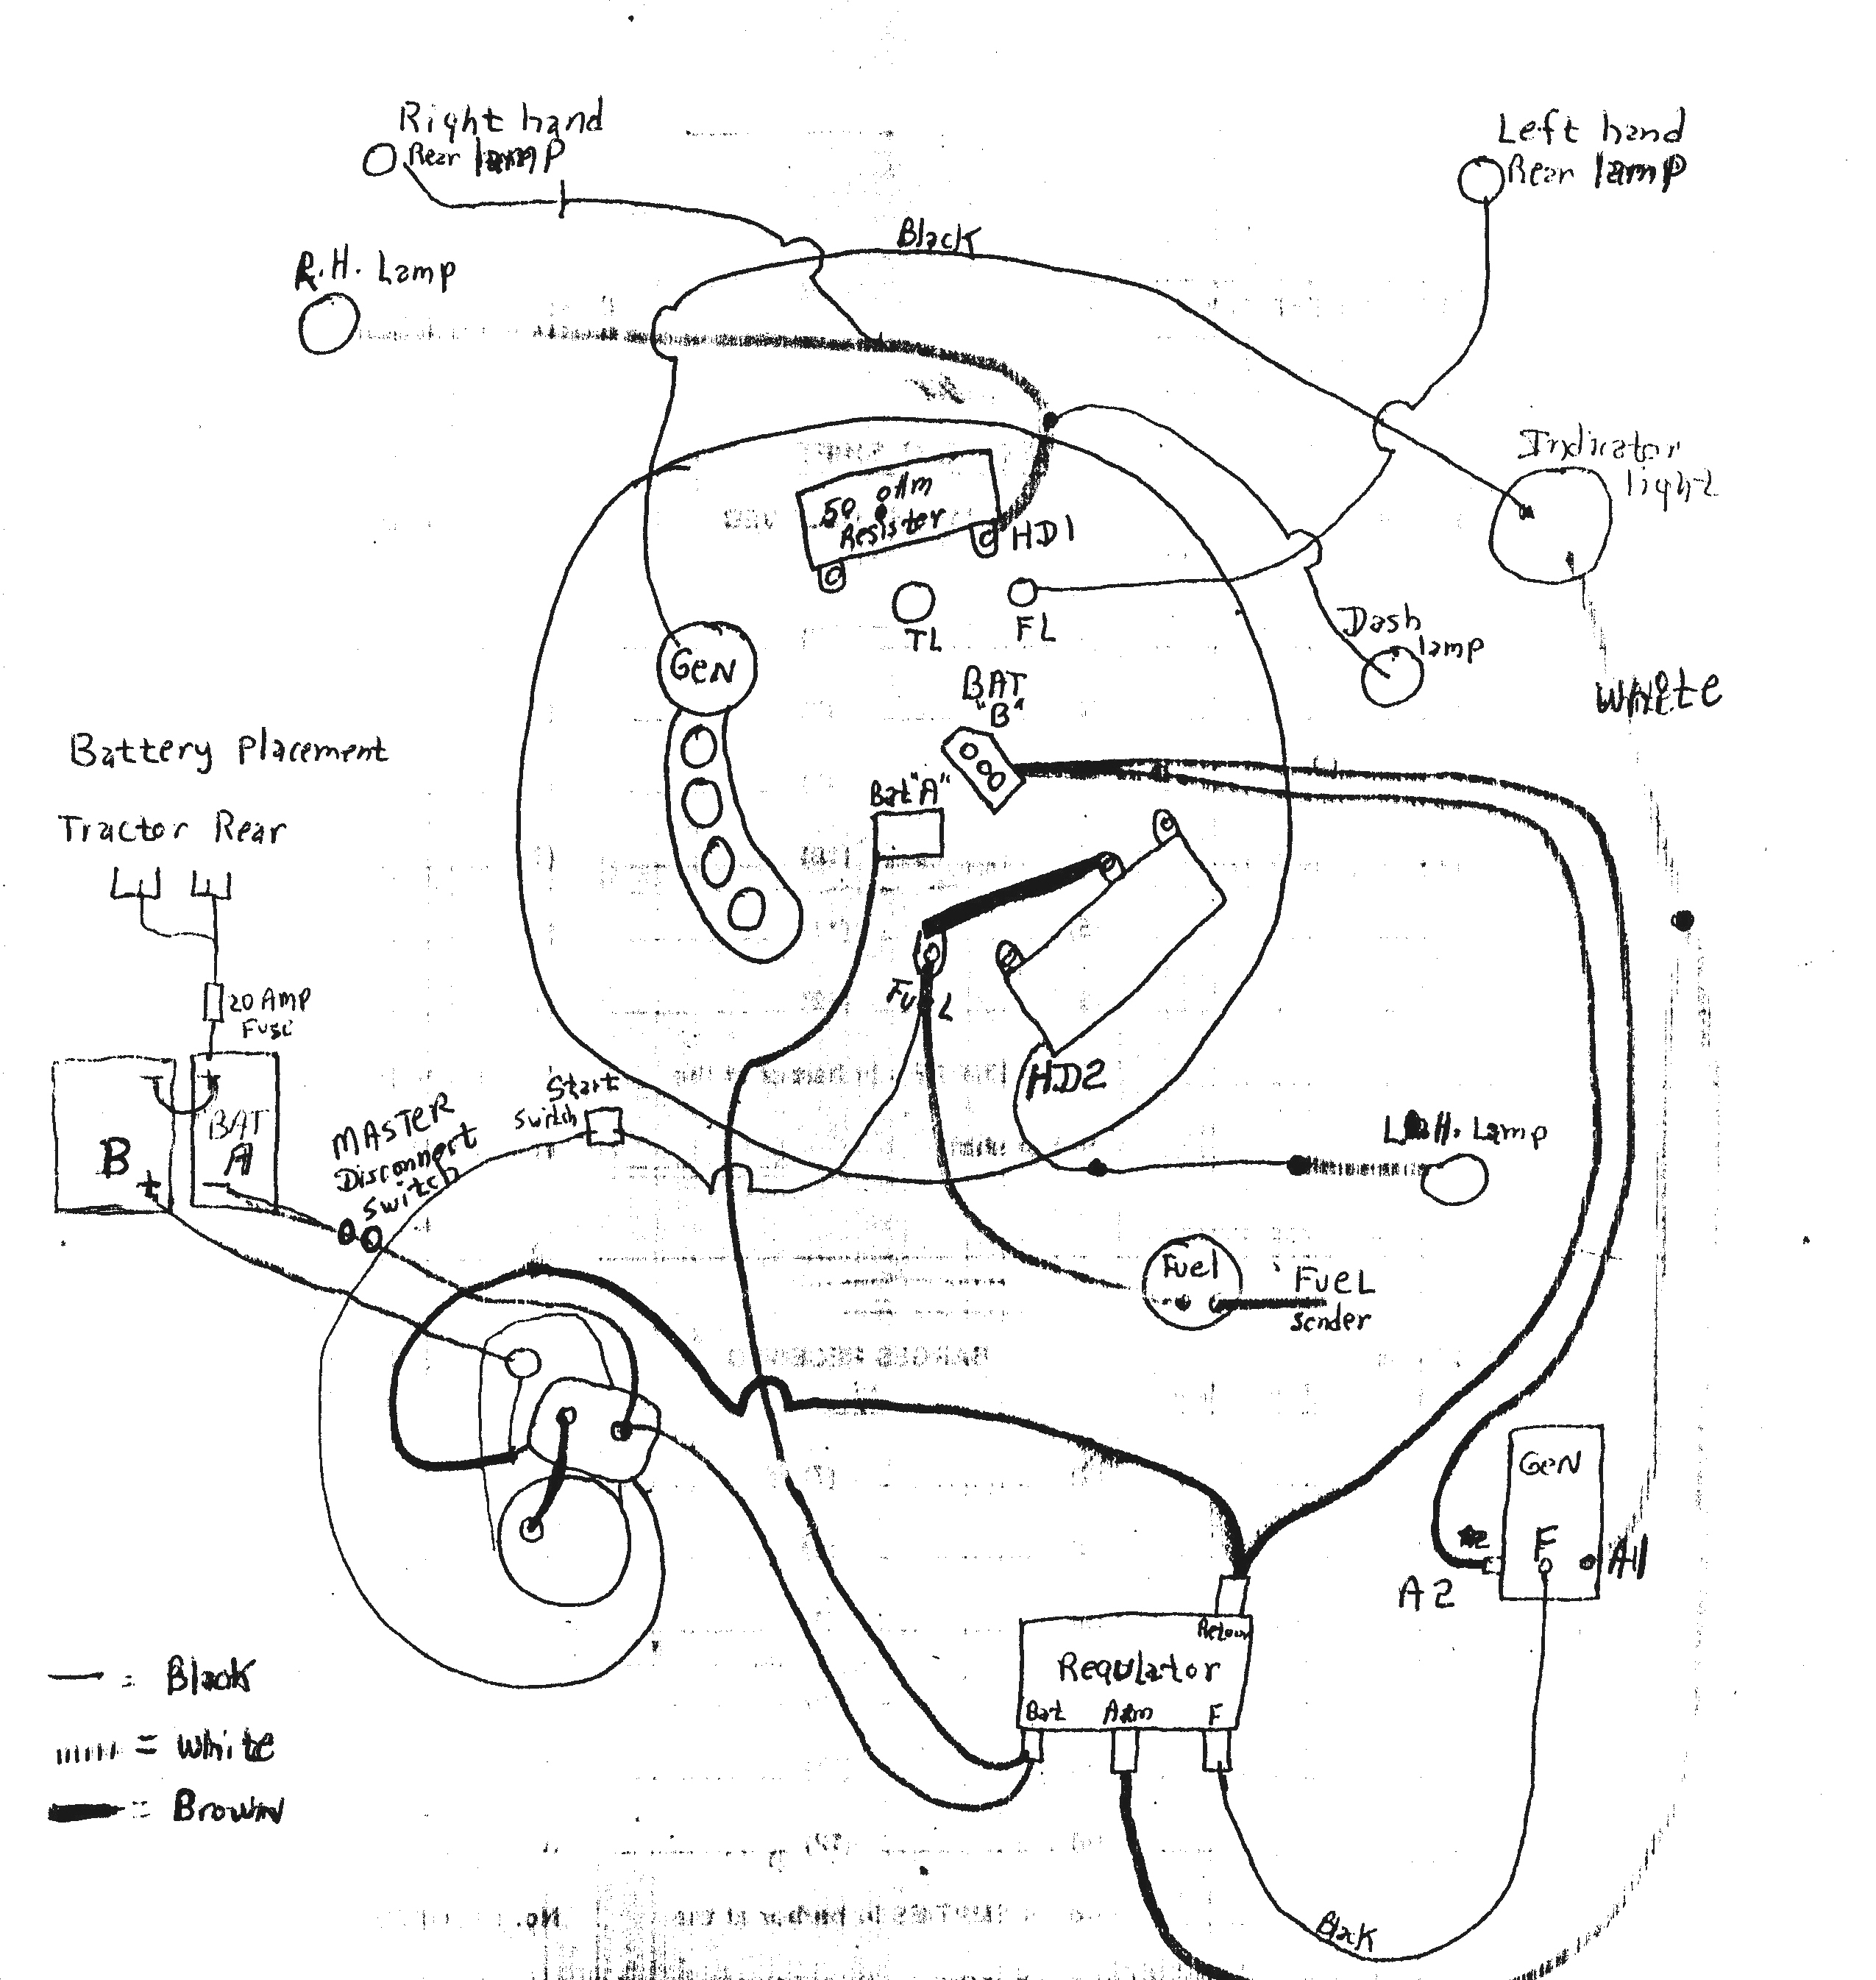 [DIAGRAM] 5425 John Deere Solenoid Wiring Diagram FULL